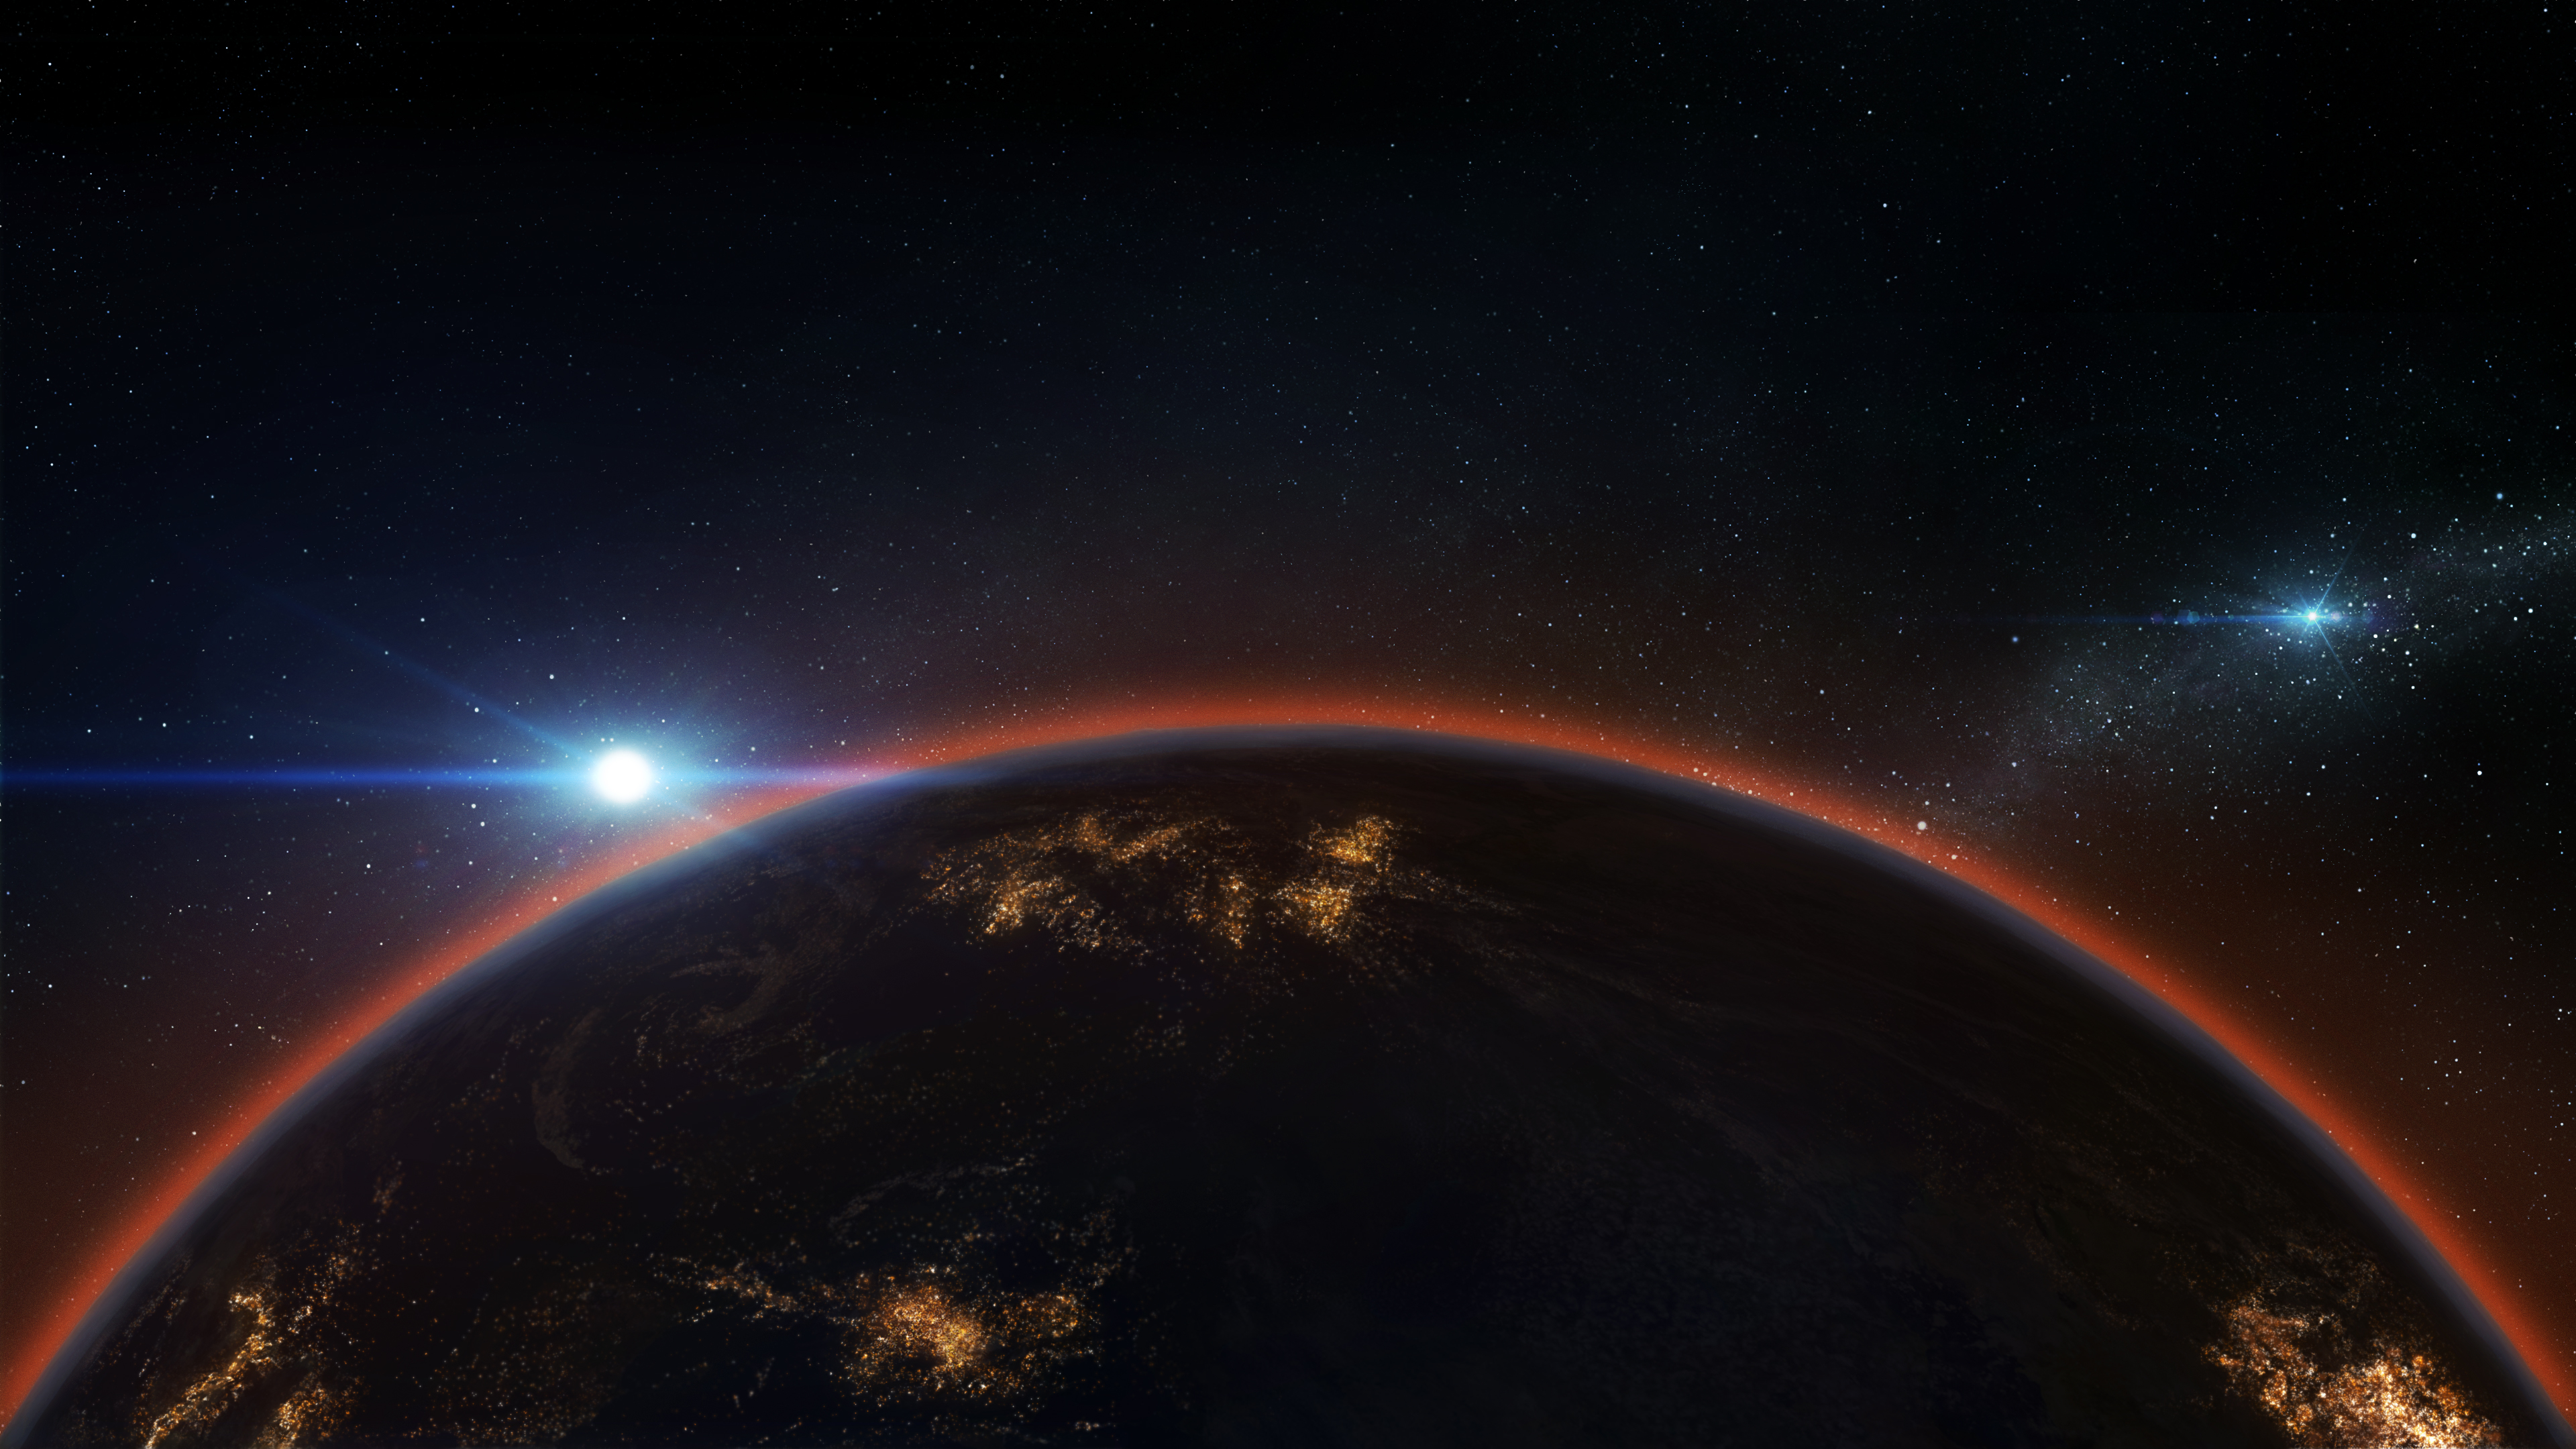 Earth Horizon Wallpaper, HD Space 4K Wallpapers, Images ...